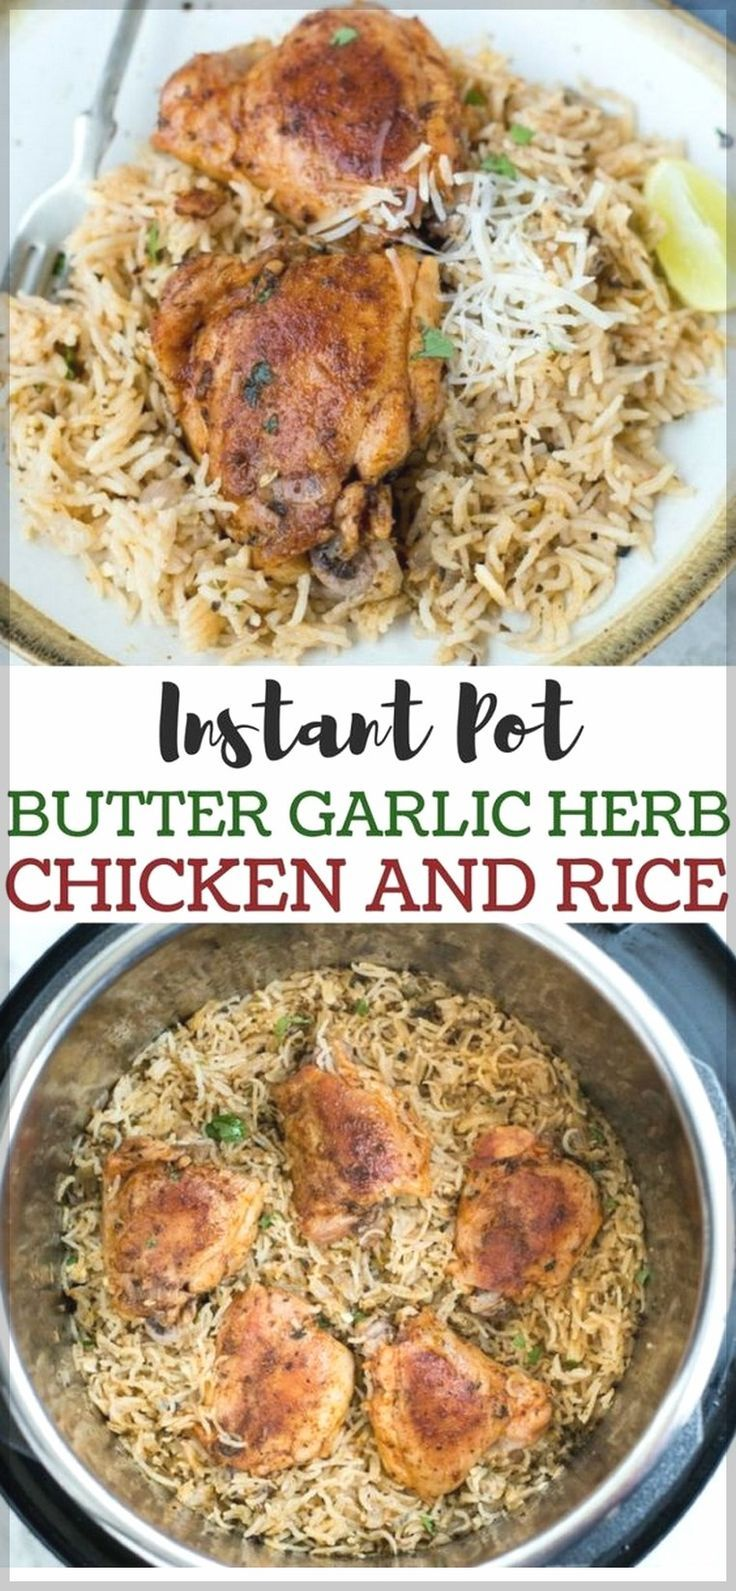 This awesome Instant Pot Garlic Herb Chicken And Rice is the perfect for weeknight family dinners and for game day bites! __undefined__ * Instant Pot Recipes Family Healthy | Instant Pot Chicken | Instant Pot Ribs | Instant Pot Recipes Beef | Instant Pot Recipes | Instant Pot  Recipes Chicken | Instant Pot For Beginner | Instant Pot #instantpotrecipesforbeginners